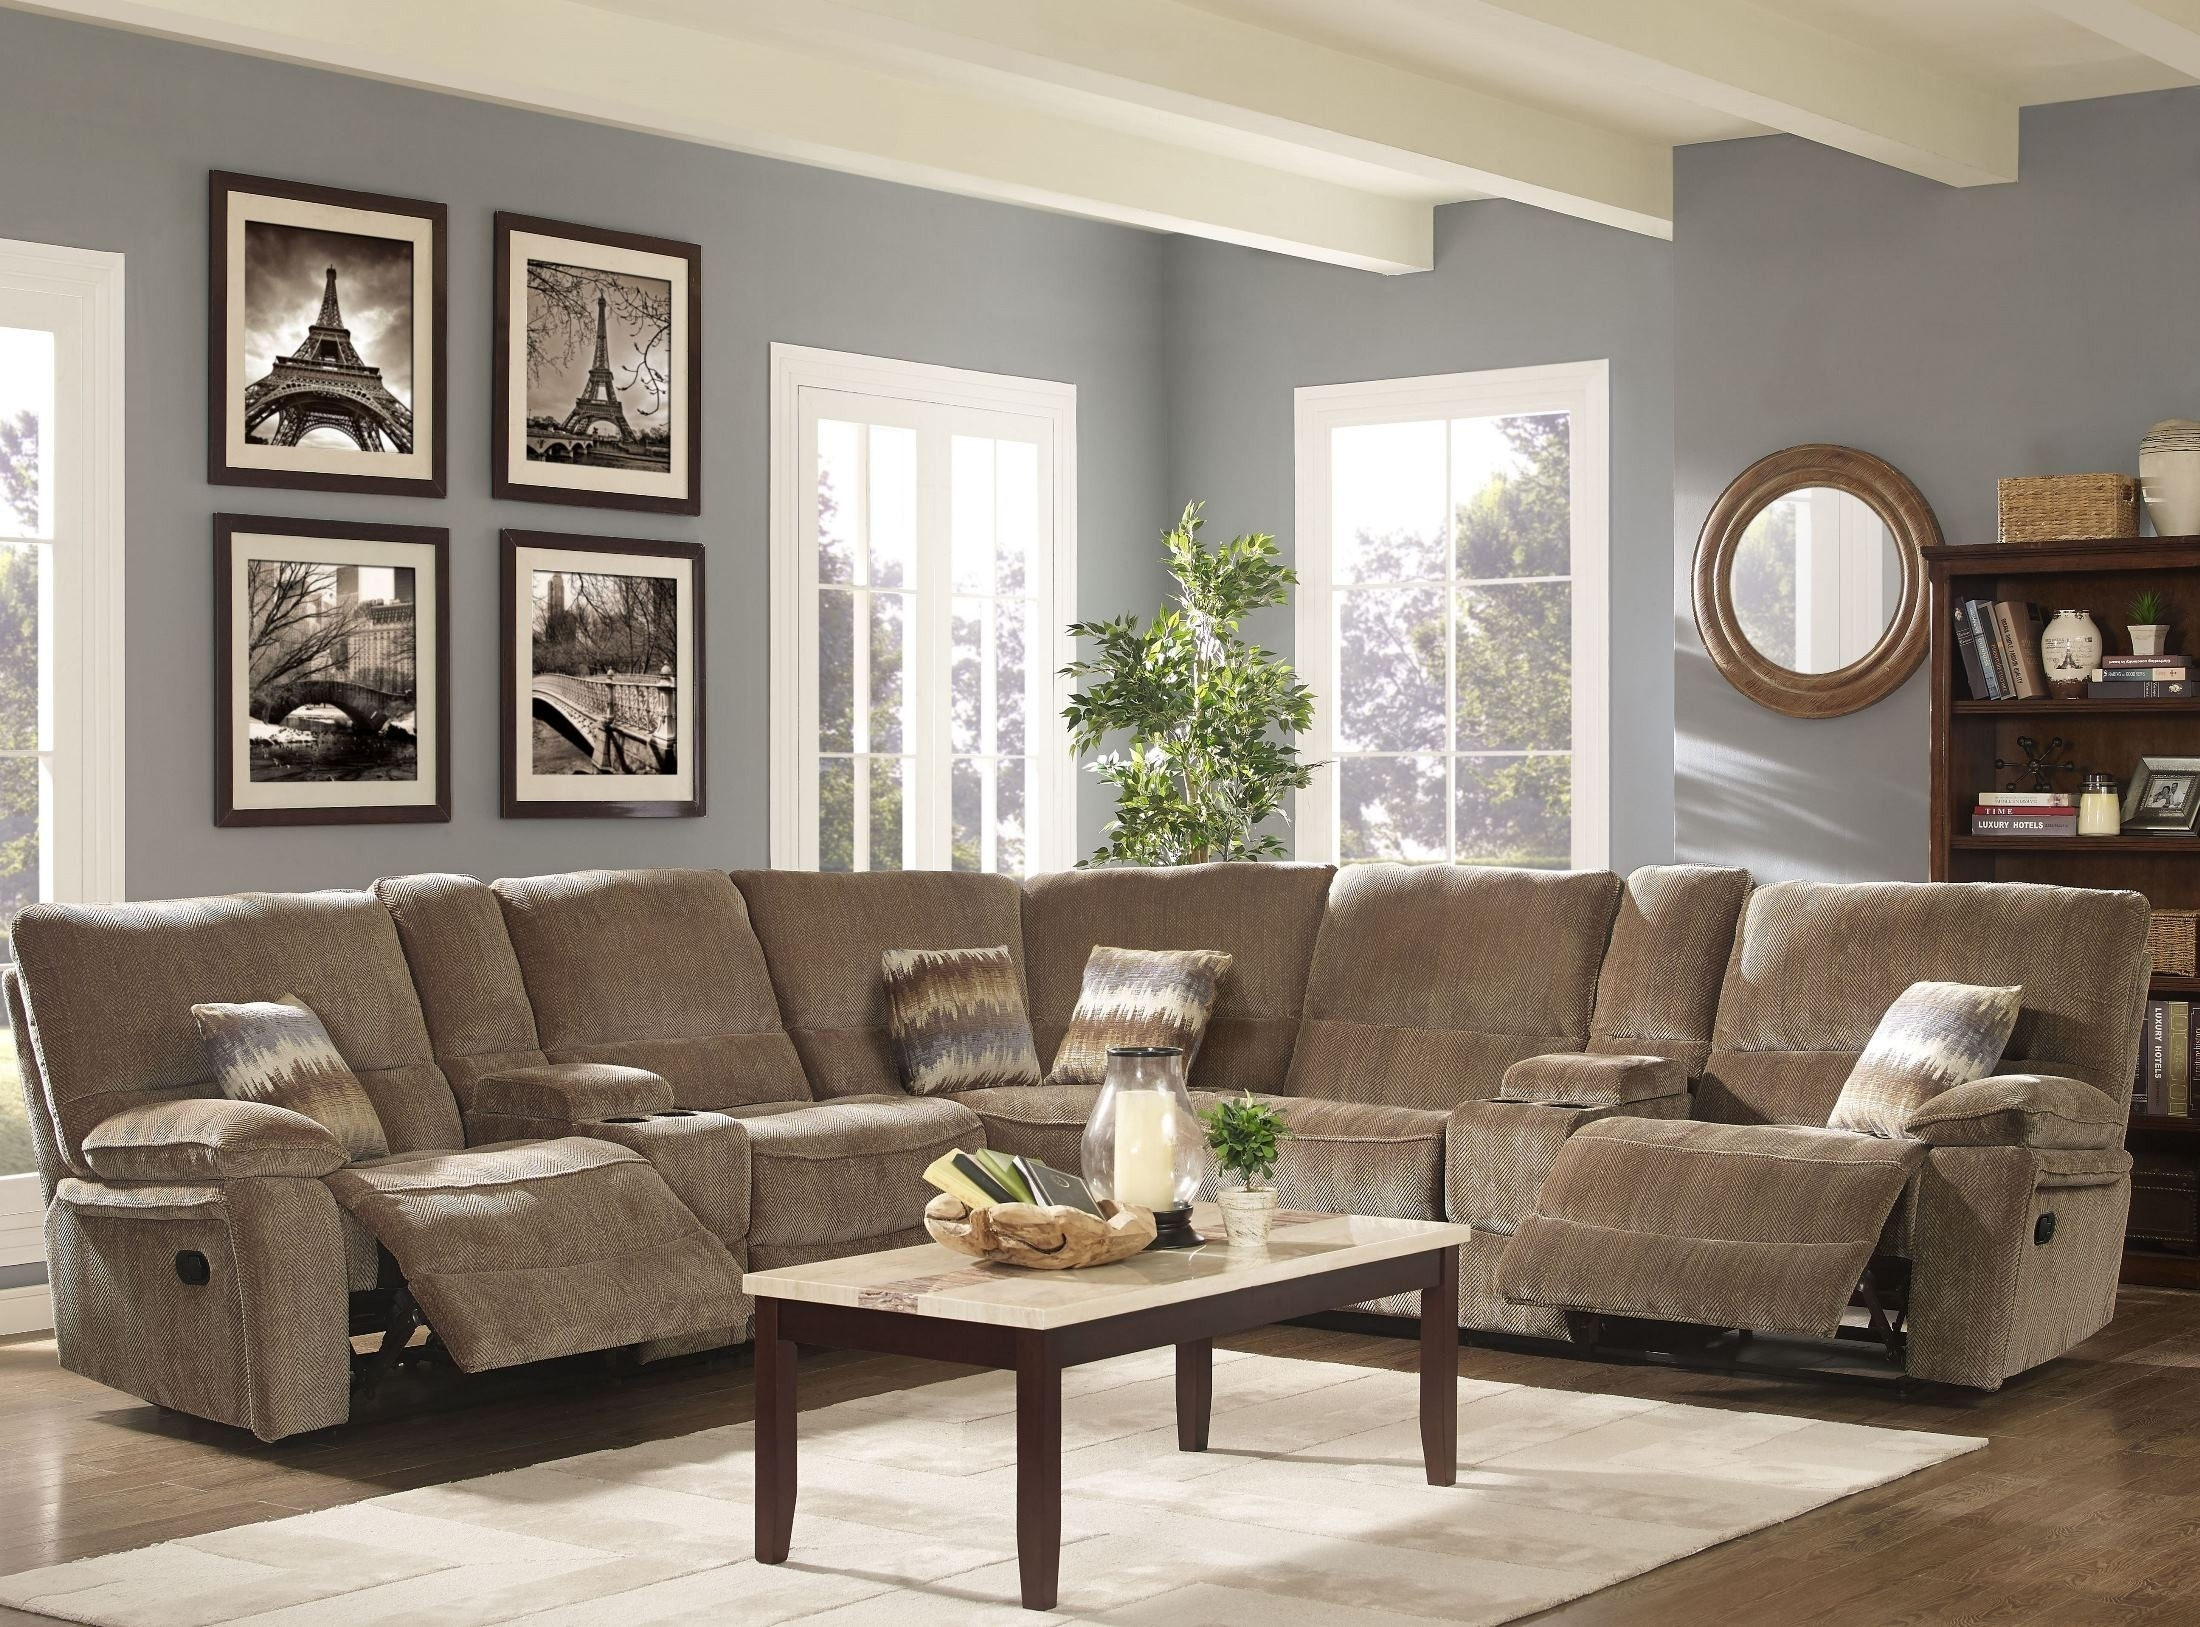 Ranger Bravo Sandalwood Power Reclining Sectional From New Classic regarding Turdur 2 Piece Sectionals With Laf Loveseat (Image 24 of 30)